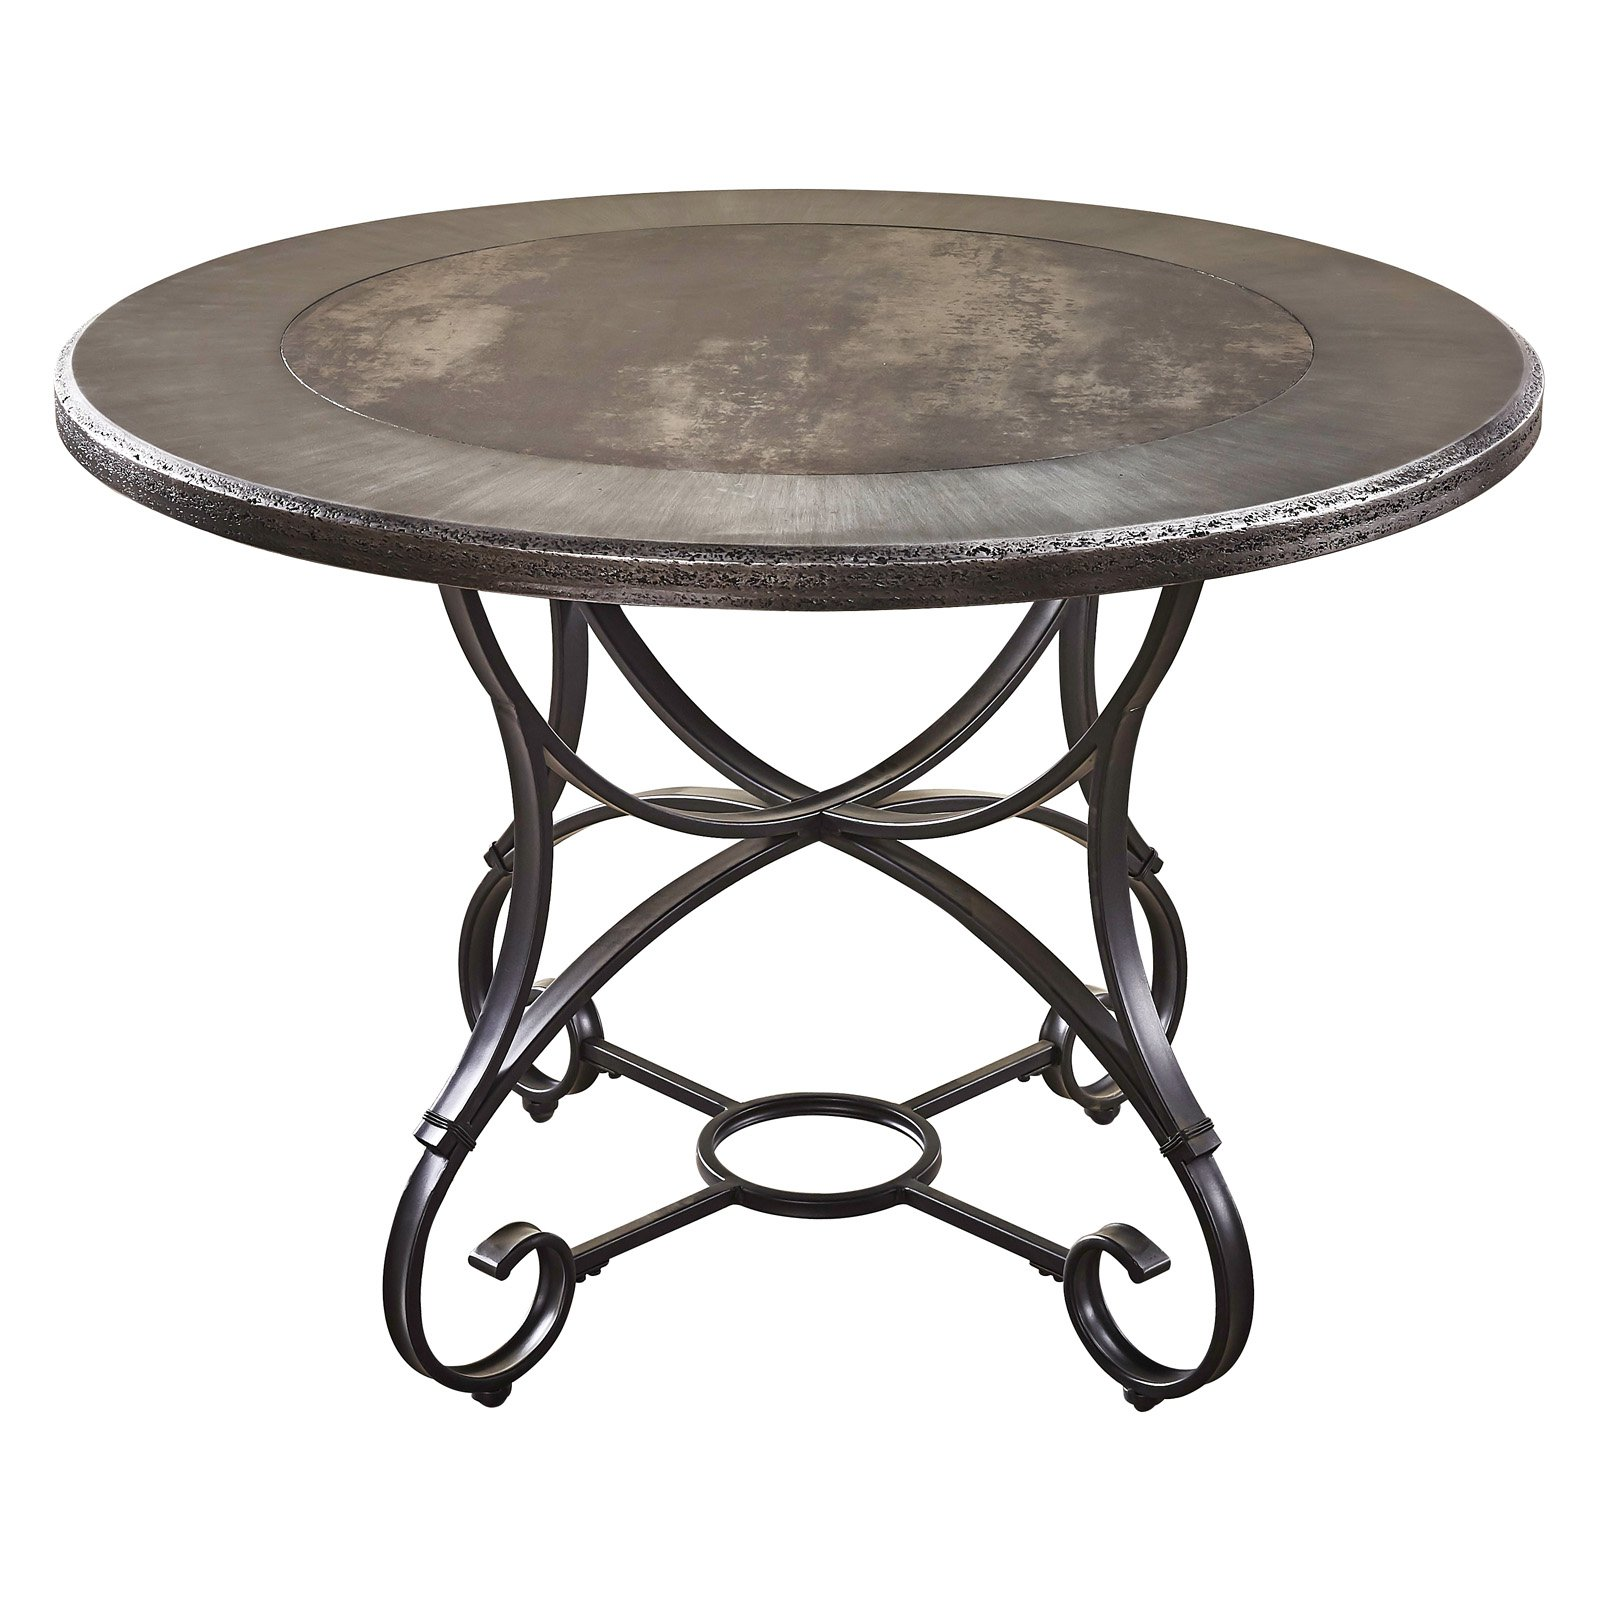 Steve Silver Co. Greystone Round Dining Table